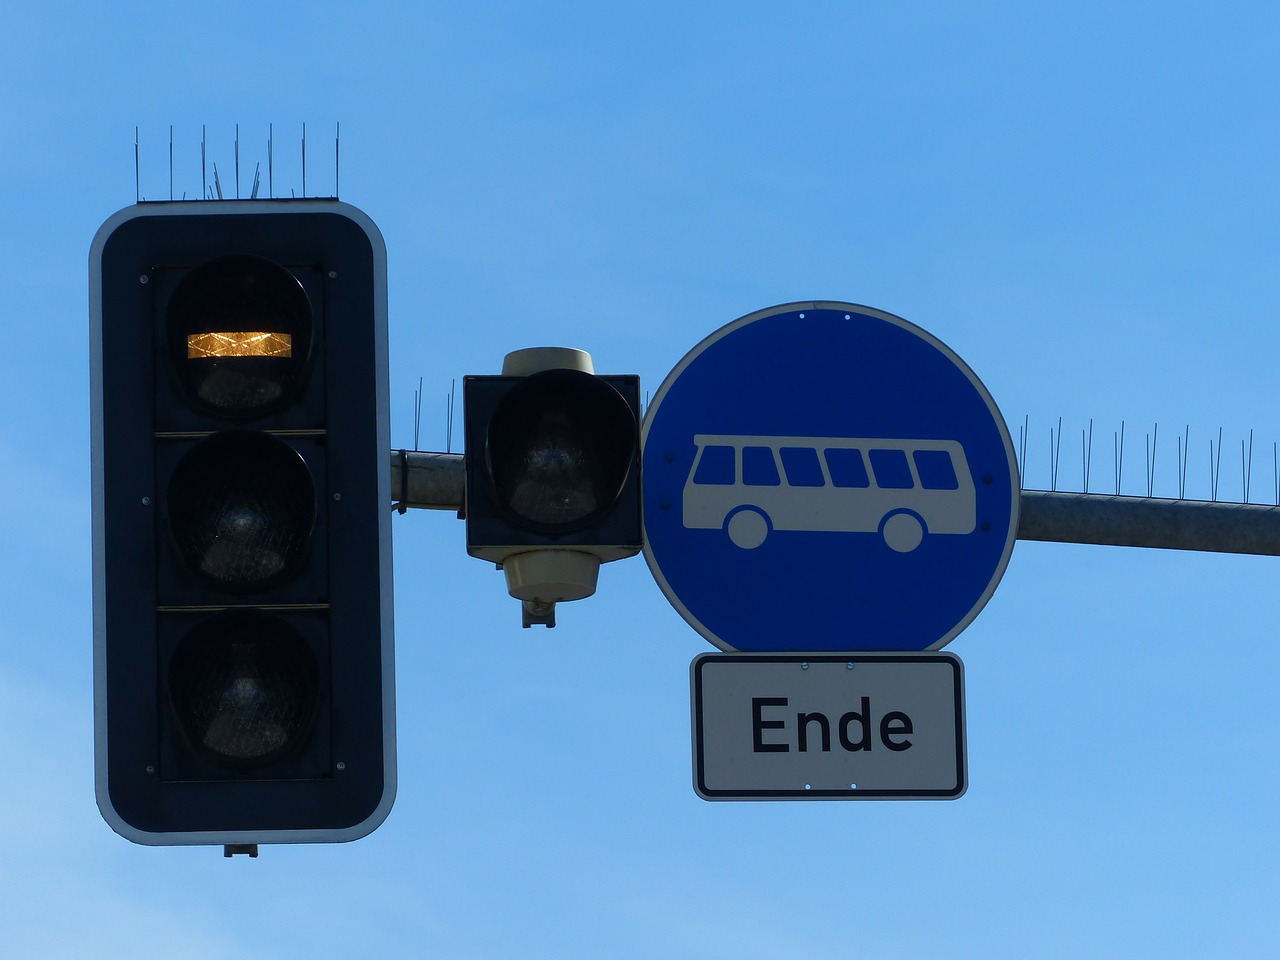 traffic-lights-99908_1280